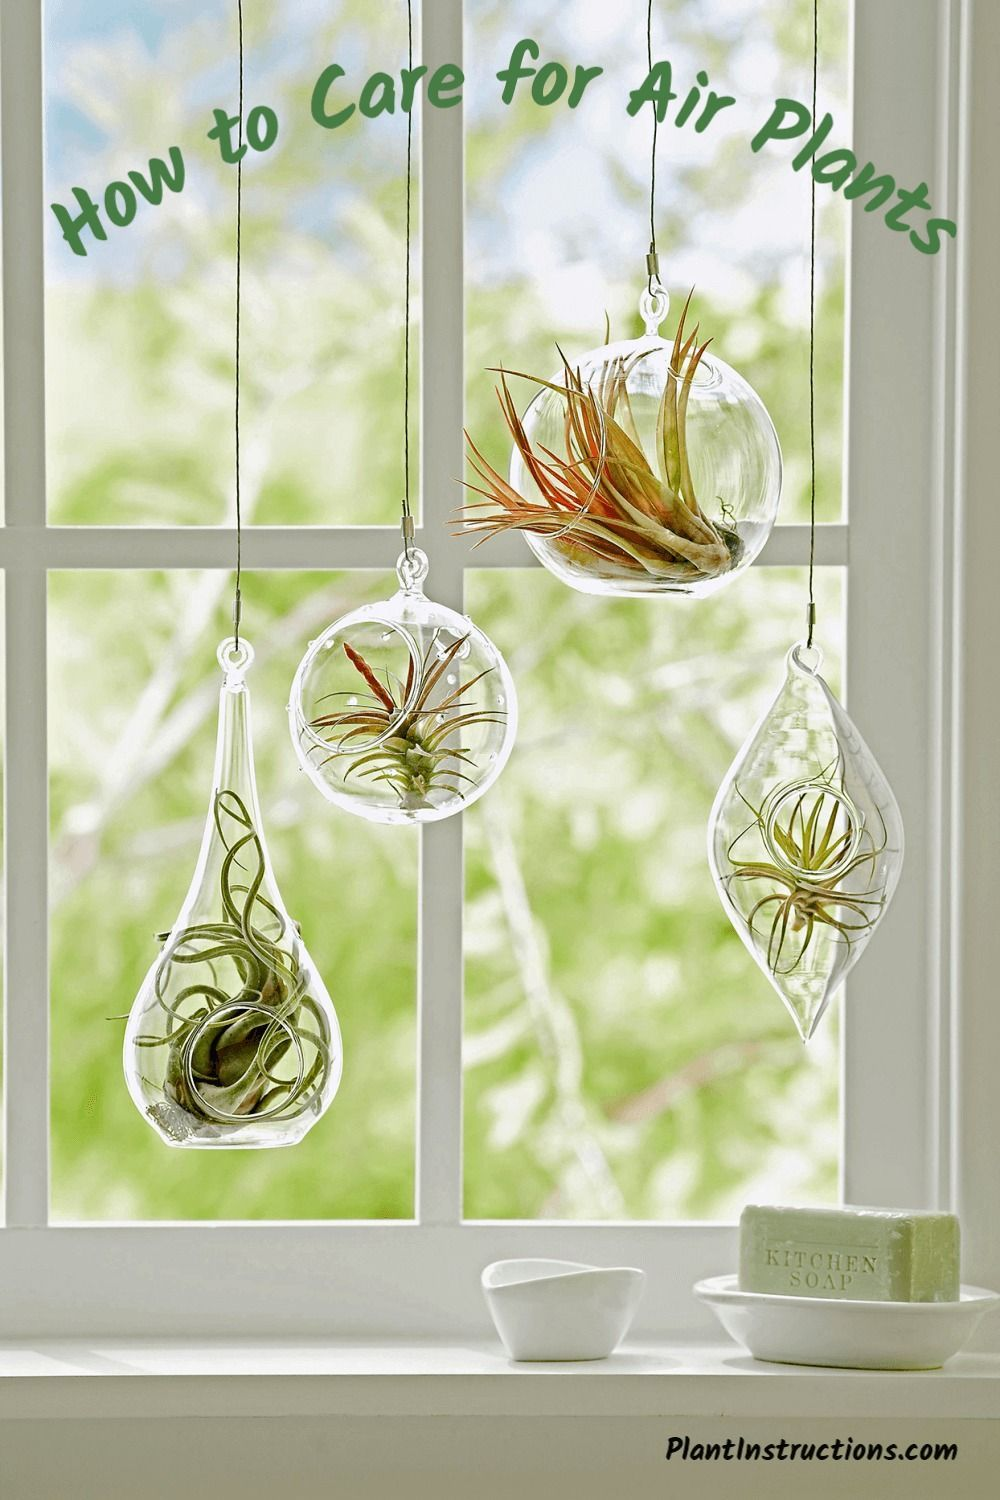 How to Care for Air Plants Air plants care, Hanging air